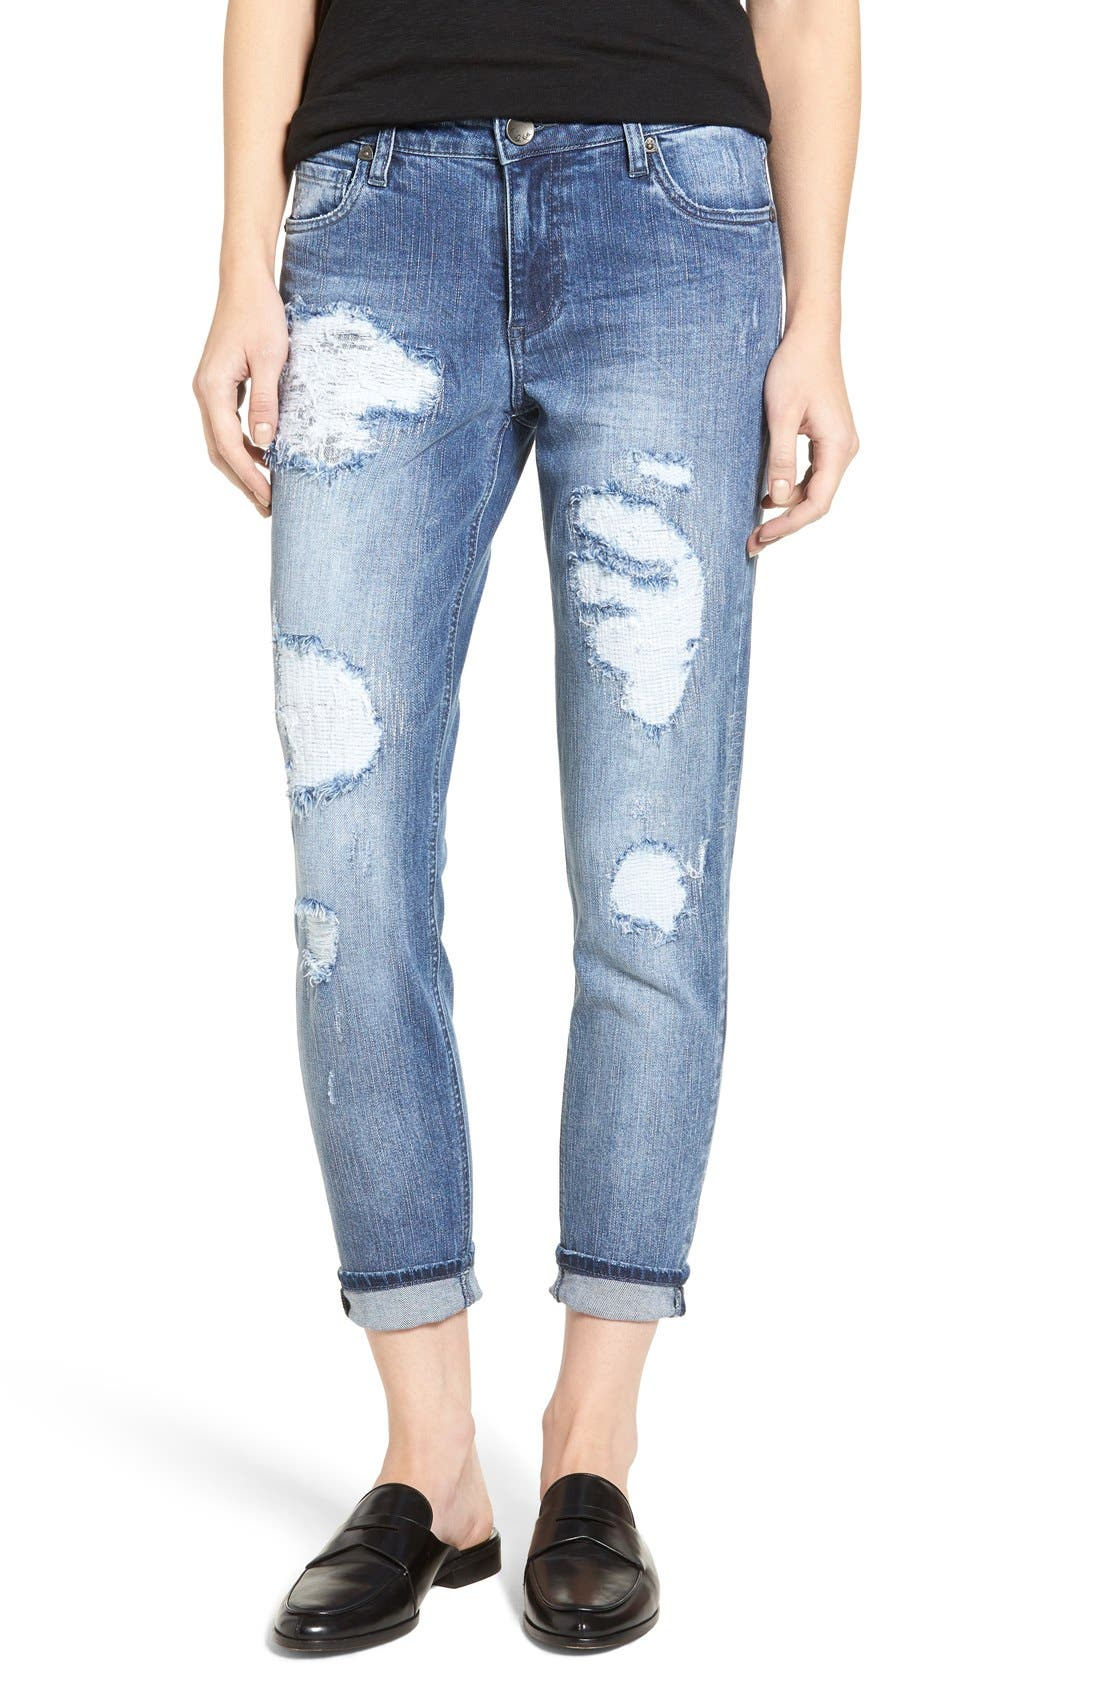 KUT FROM THE KLOTH Ripped Boyfriend Jeans